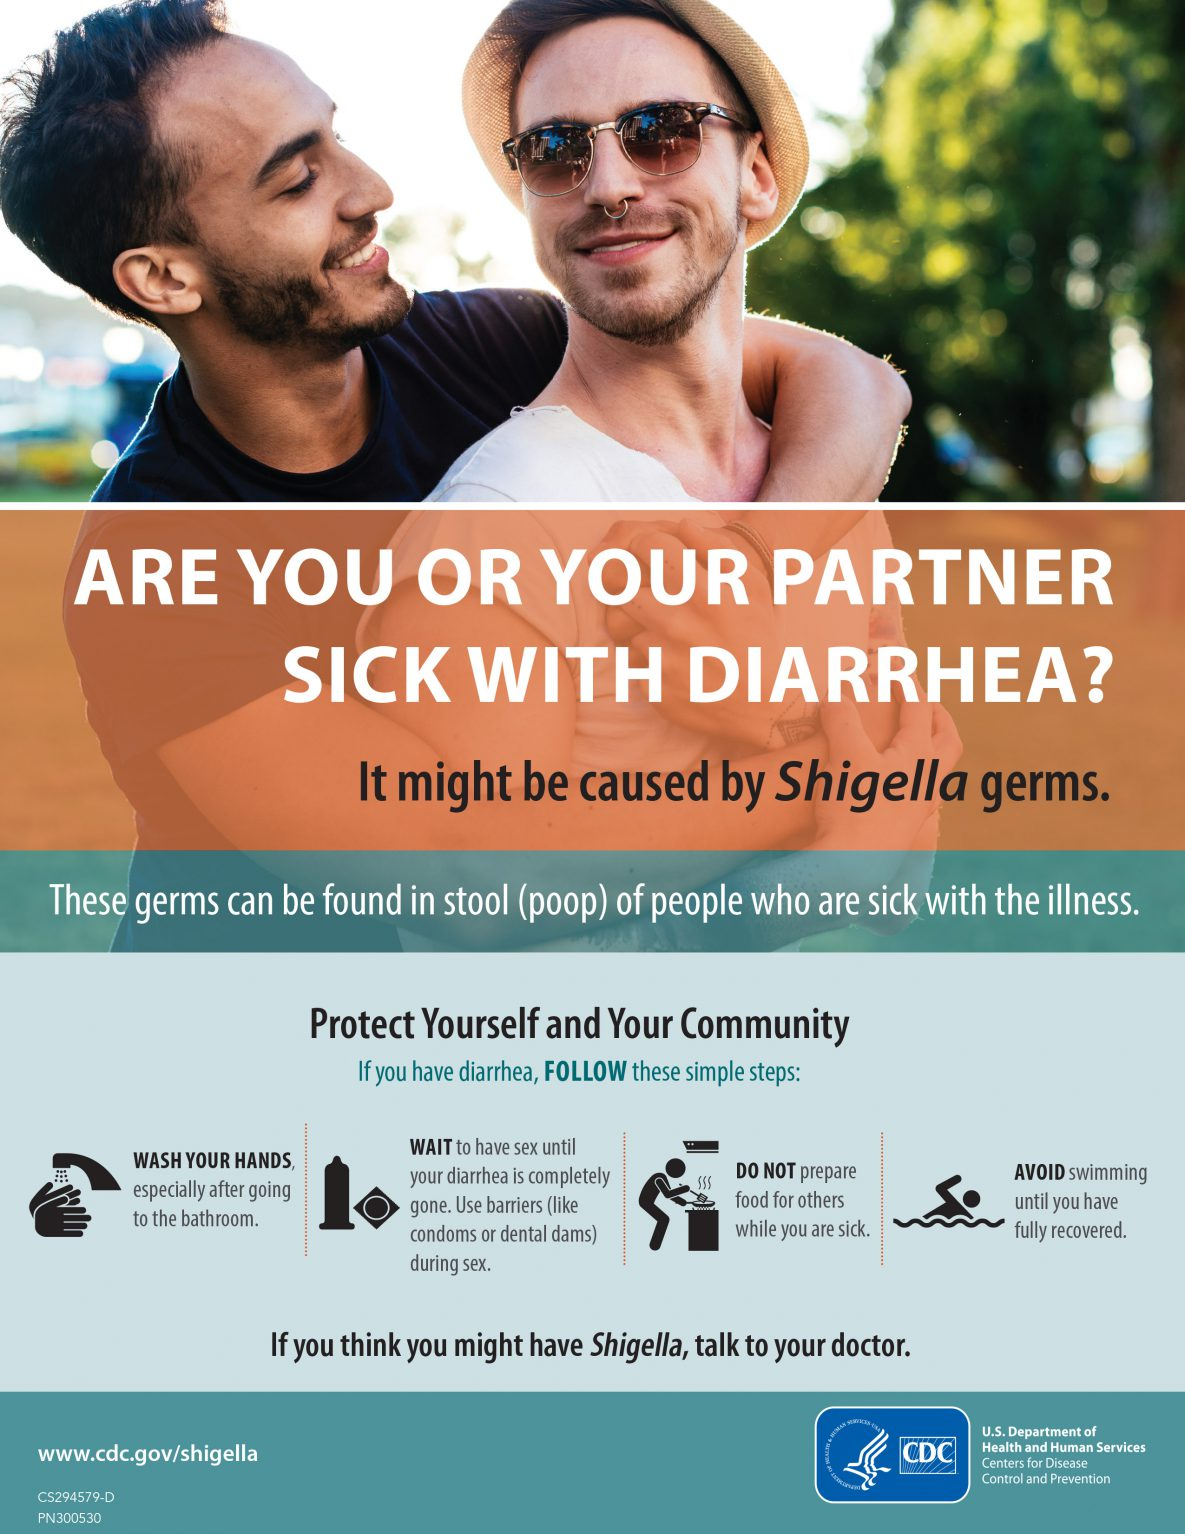 Are you or your partner sick with diarrhea? For MSM